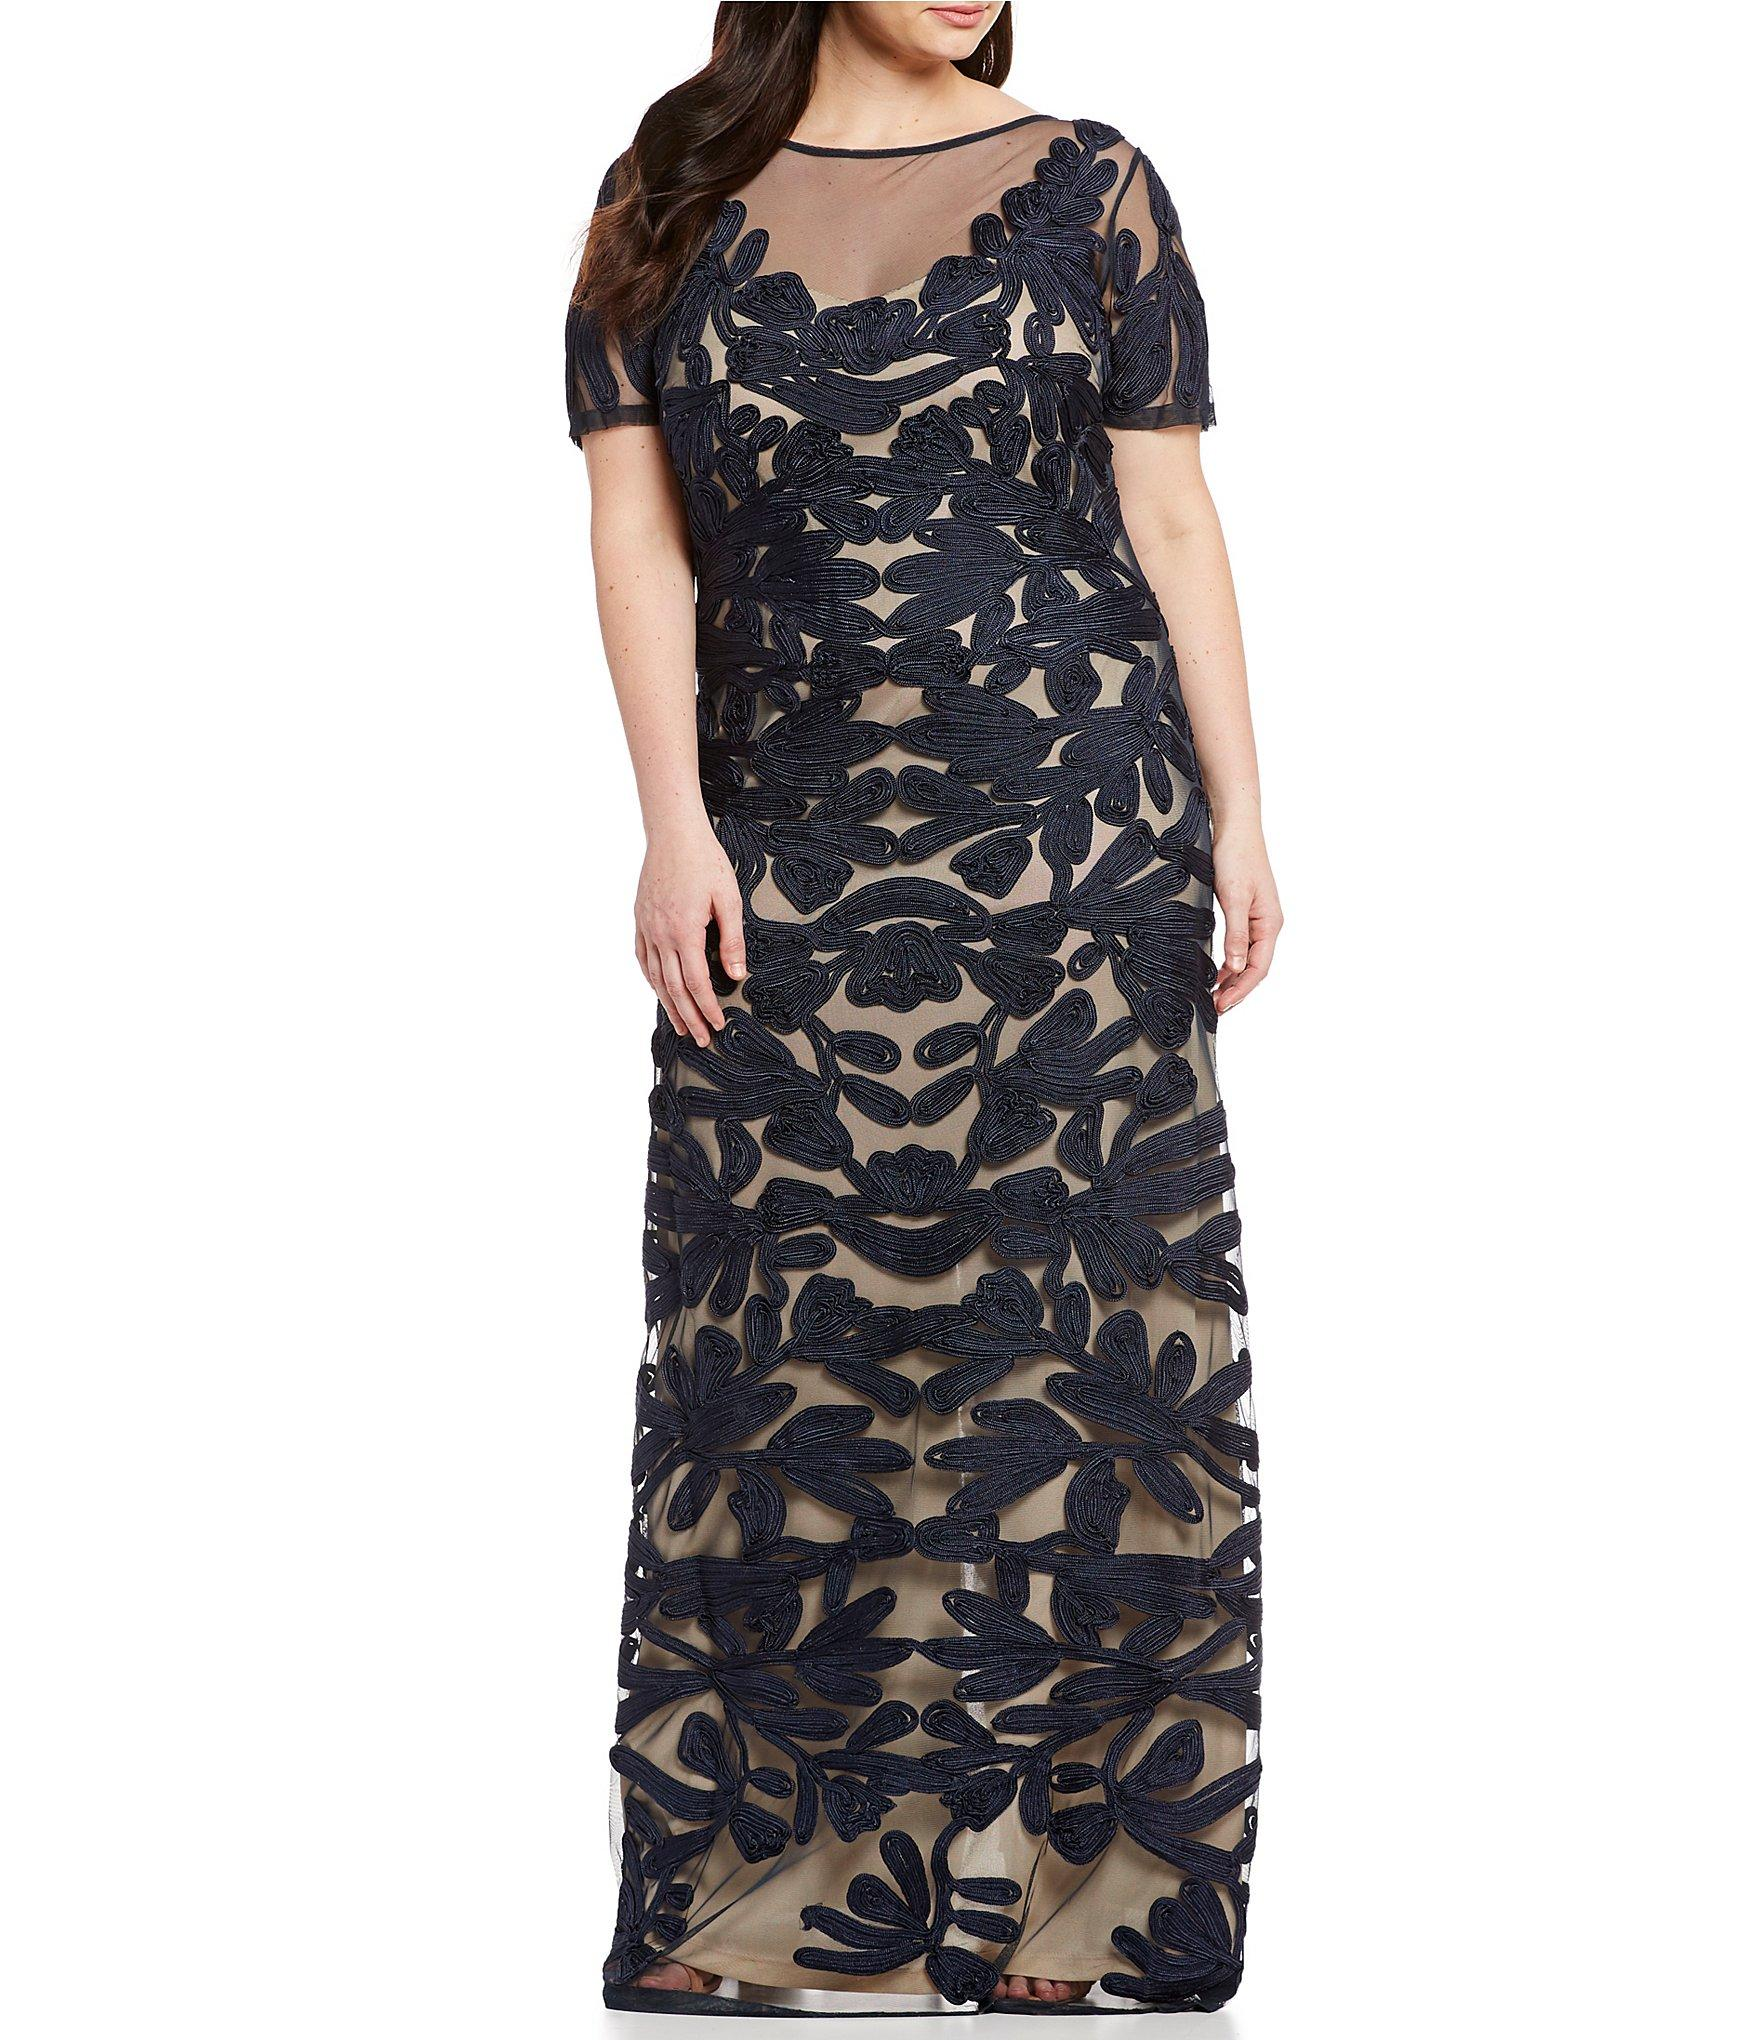 b2496b26362e14 JS Collections. Women's Blue Plus Size Illusion Neck Short Sleeve  Embroidered Soutache Gown